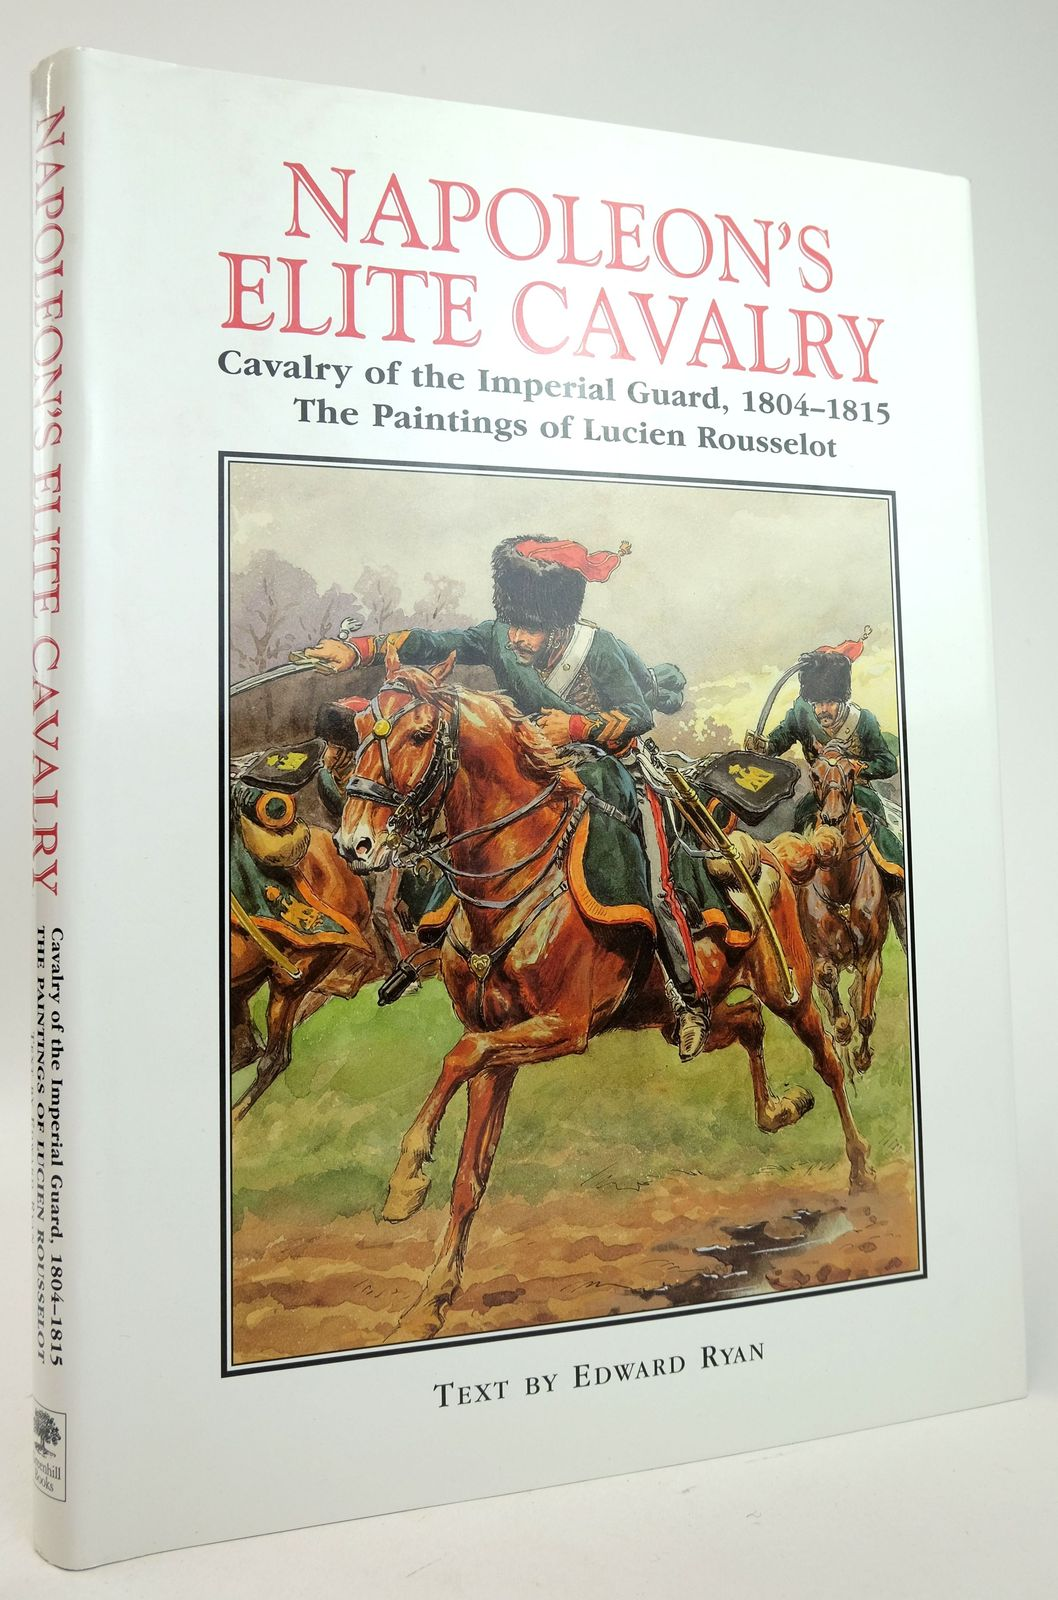 Photo of NAPOLEON'S ELITE CAVALRY written by Ryan, Edward illustrated by Rousselot, Lucien published by Greenhill Books, Stackpole Books (STOCK CODE: 1819985)  for sale by Stella & Rose's Books